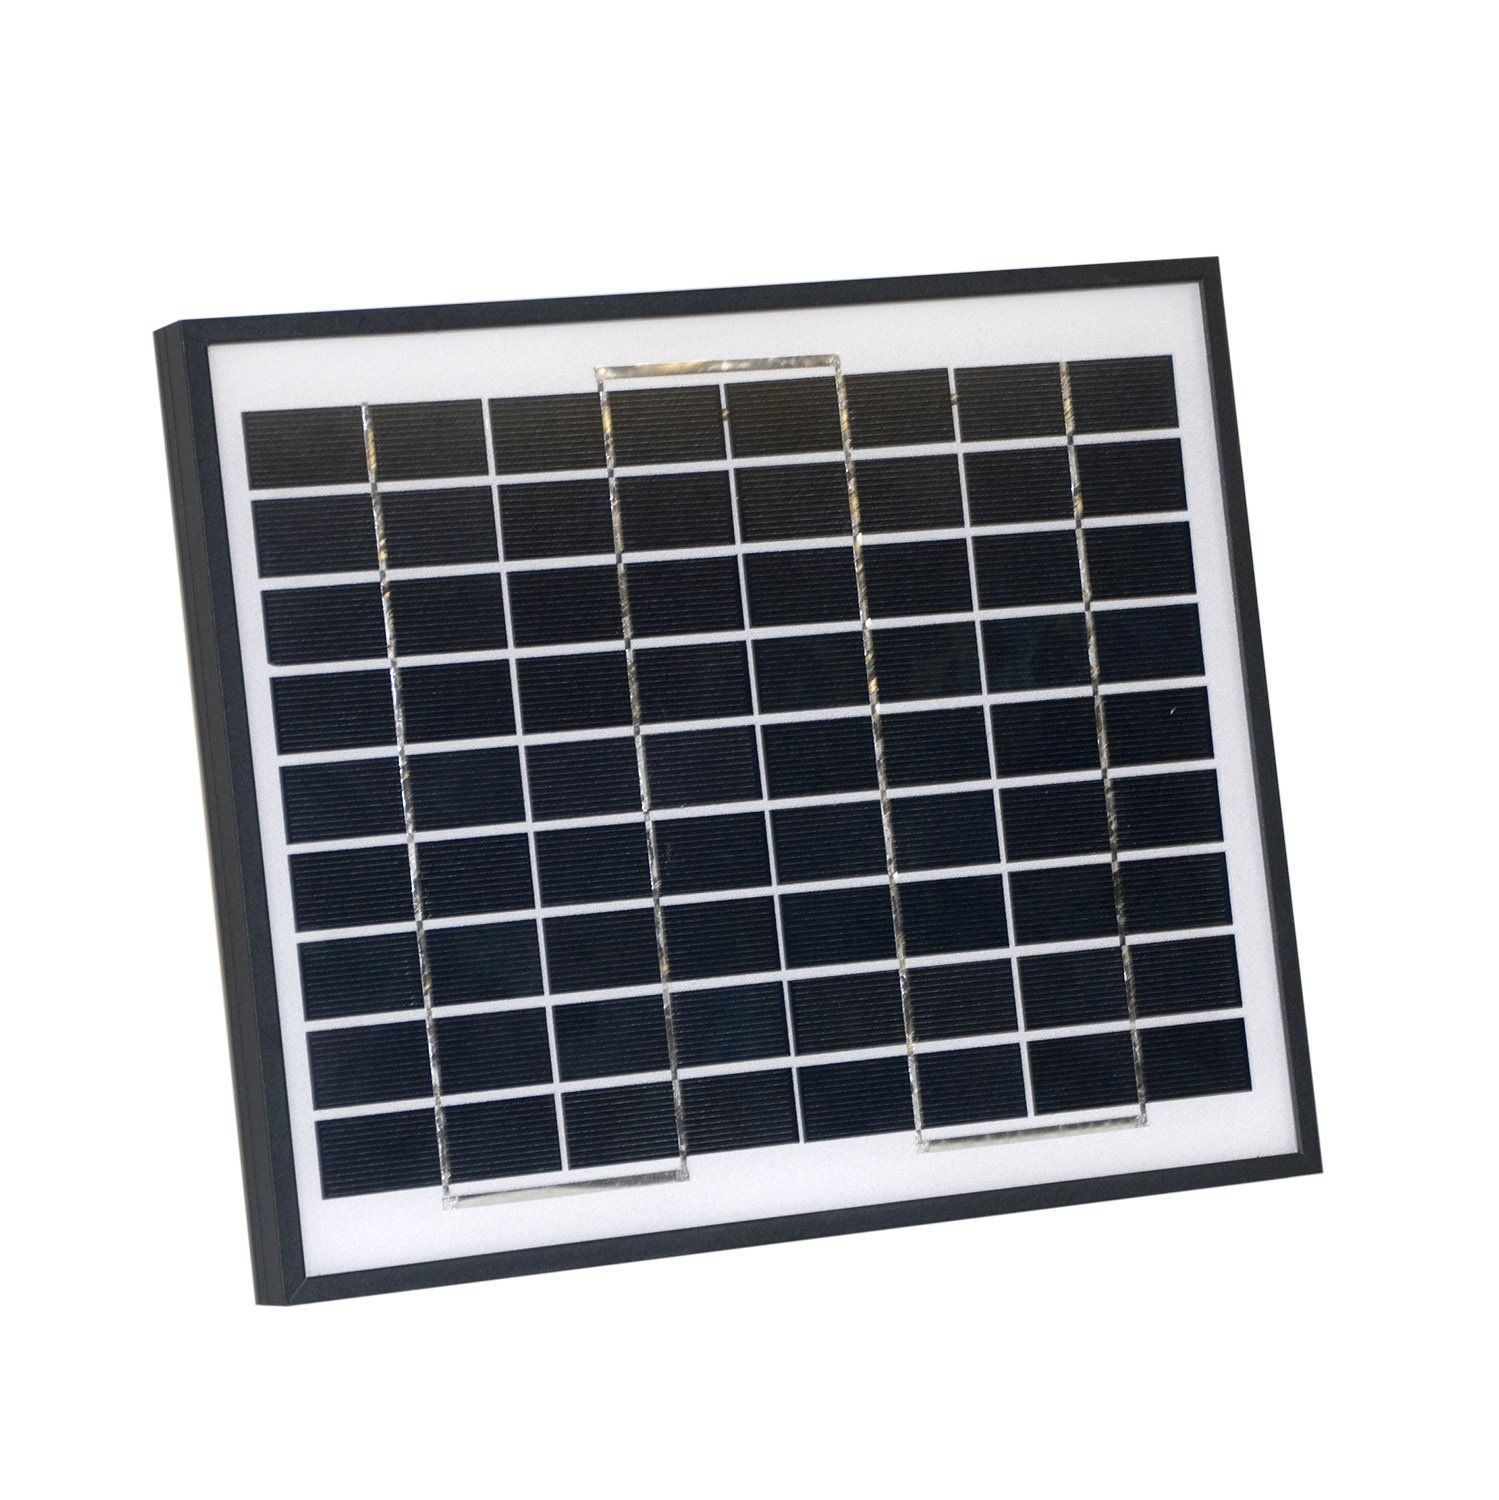 5 watt solar panel kit fm121 for mighty mule automatic gate cheap 10 watt solar panel kit for mighty mule automatic gate openers deals week find this pin and more on diy solutioingenieria Choice Image